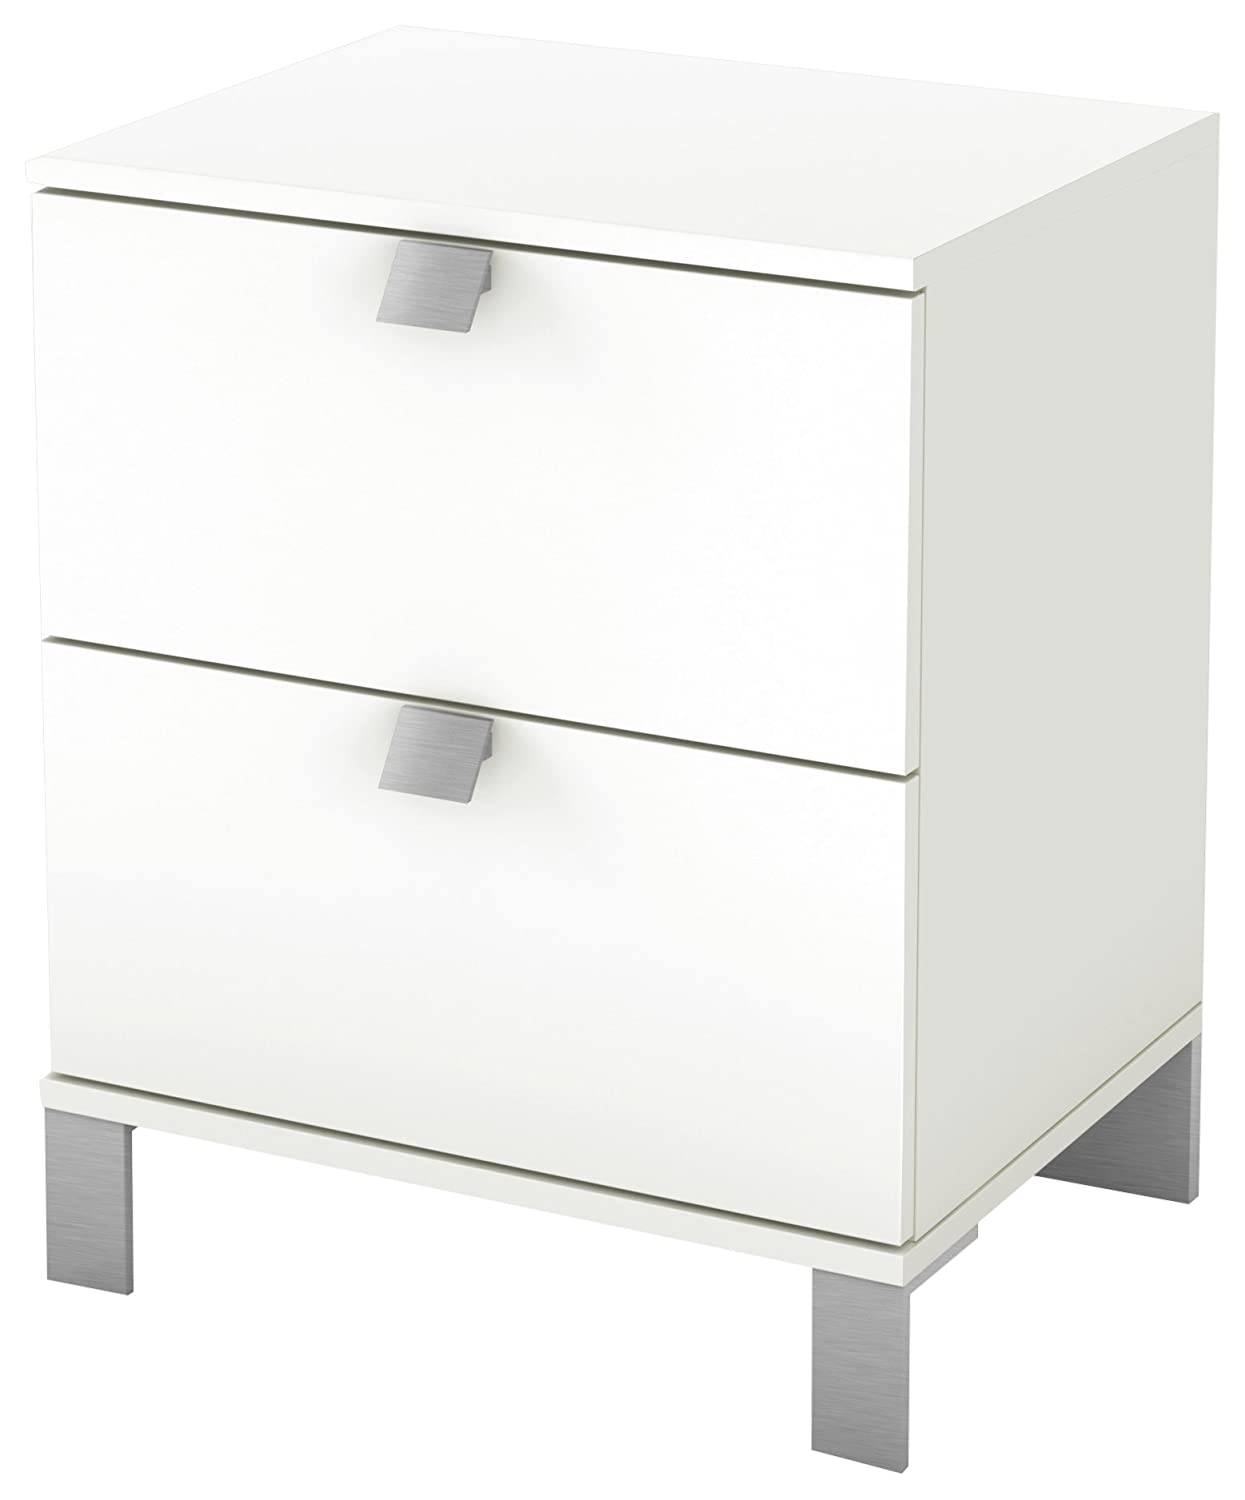 South Shore Spark Collection 2-Drawer Nightstand, Pure White with Satin Nickel Handles 3260060